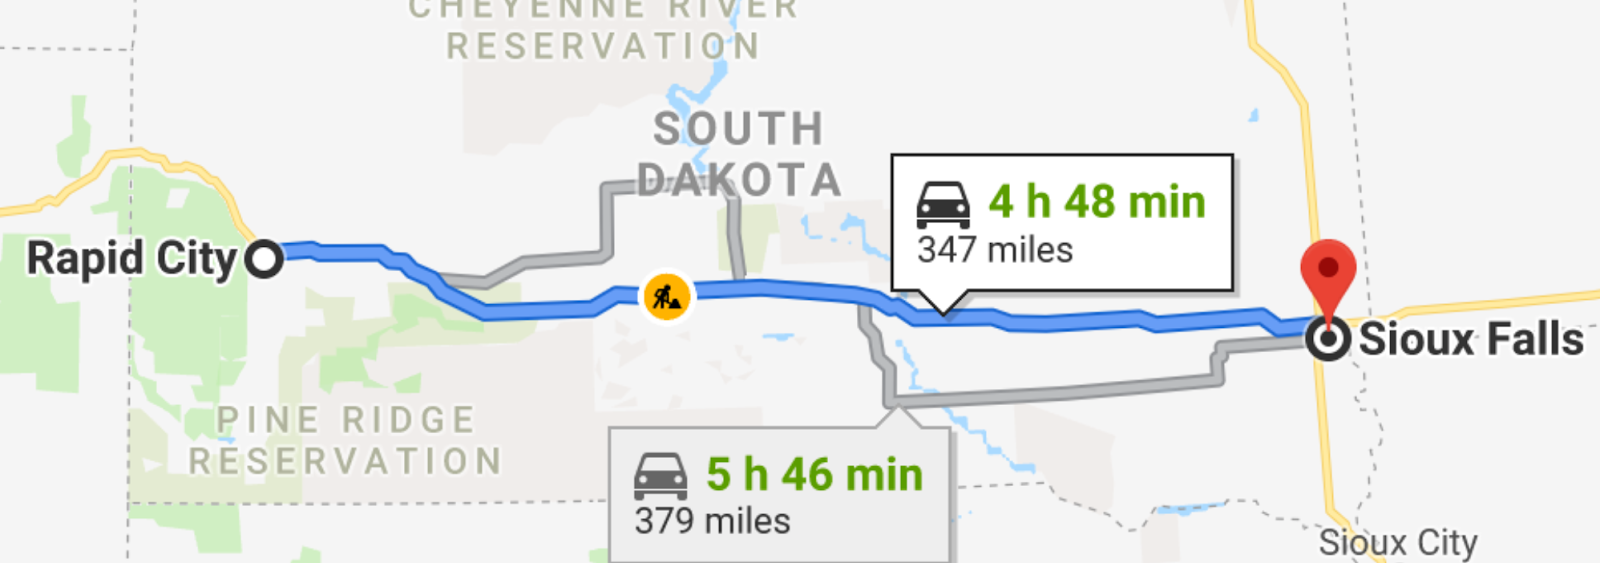 medium resolution of badlands natl park s state s dak it s about the only interesting thing between rapid city and sioux falls